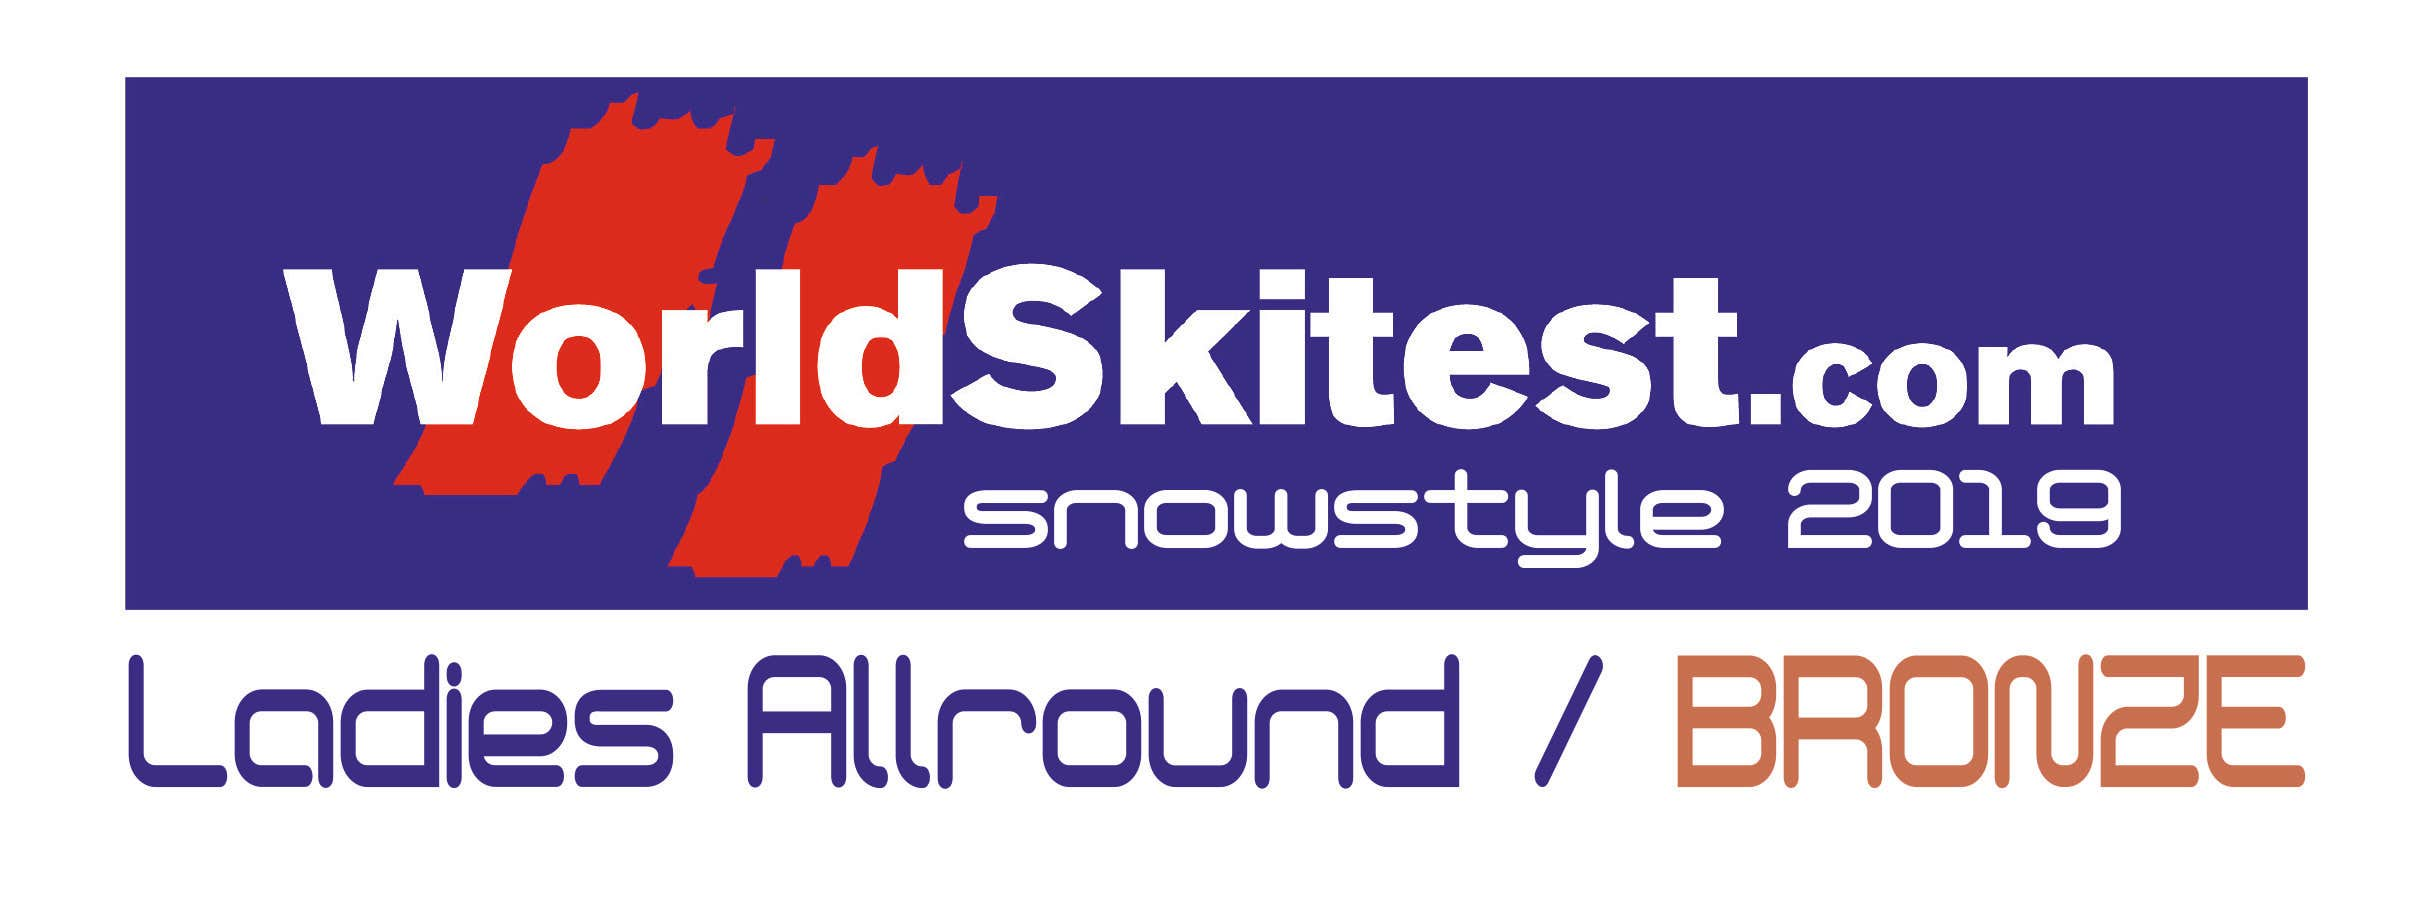 3rd Place Test Ladies Allround - WorldSkitest